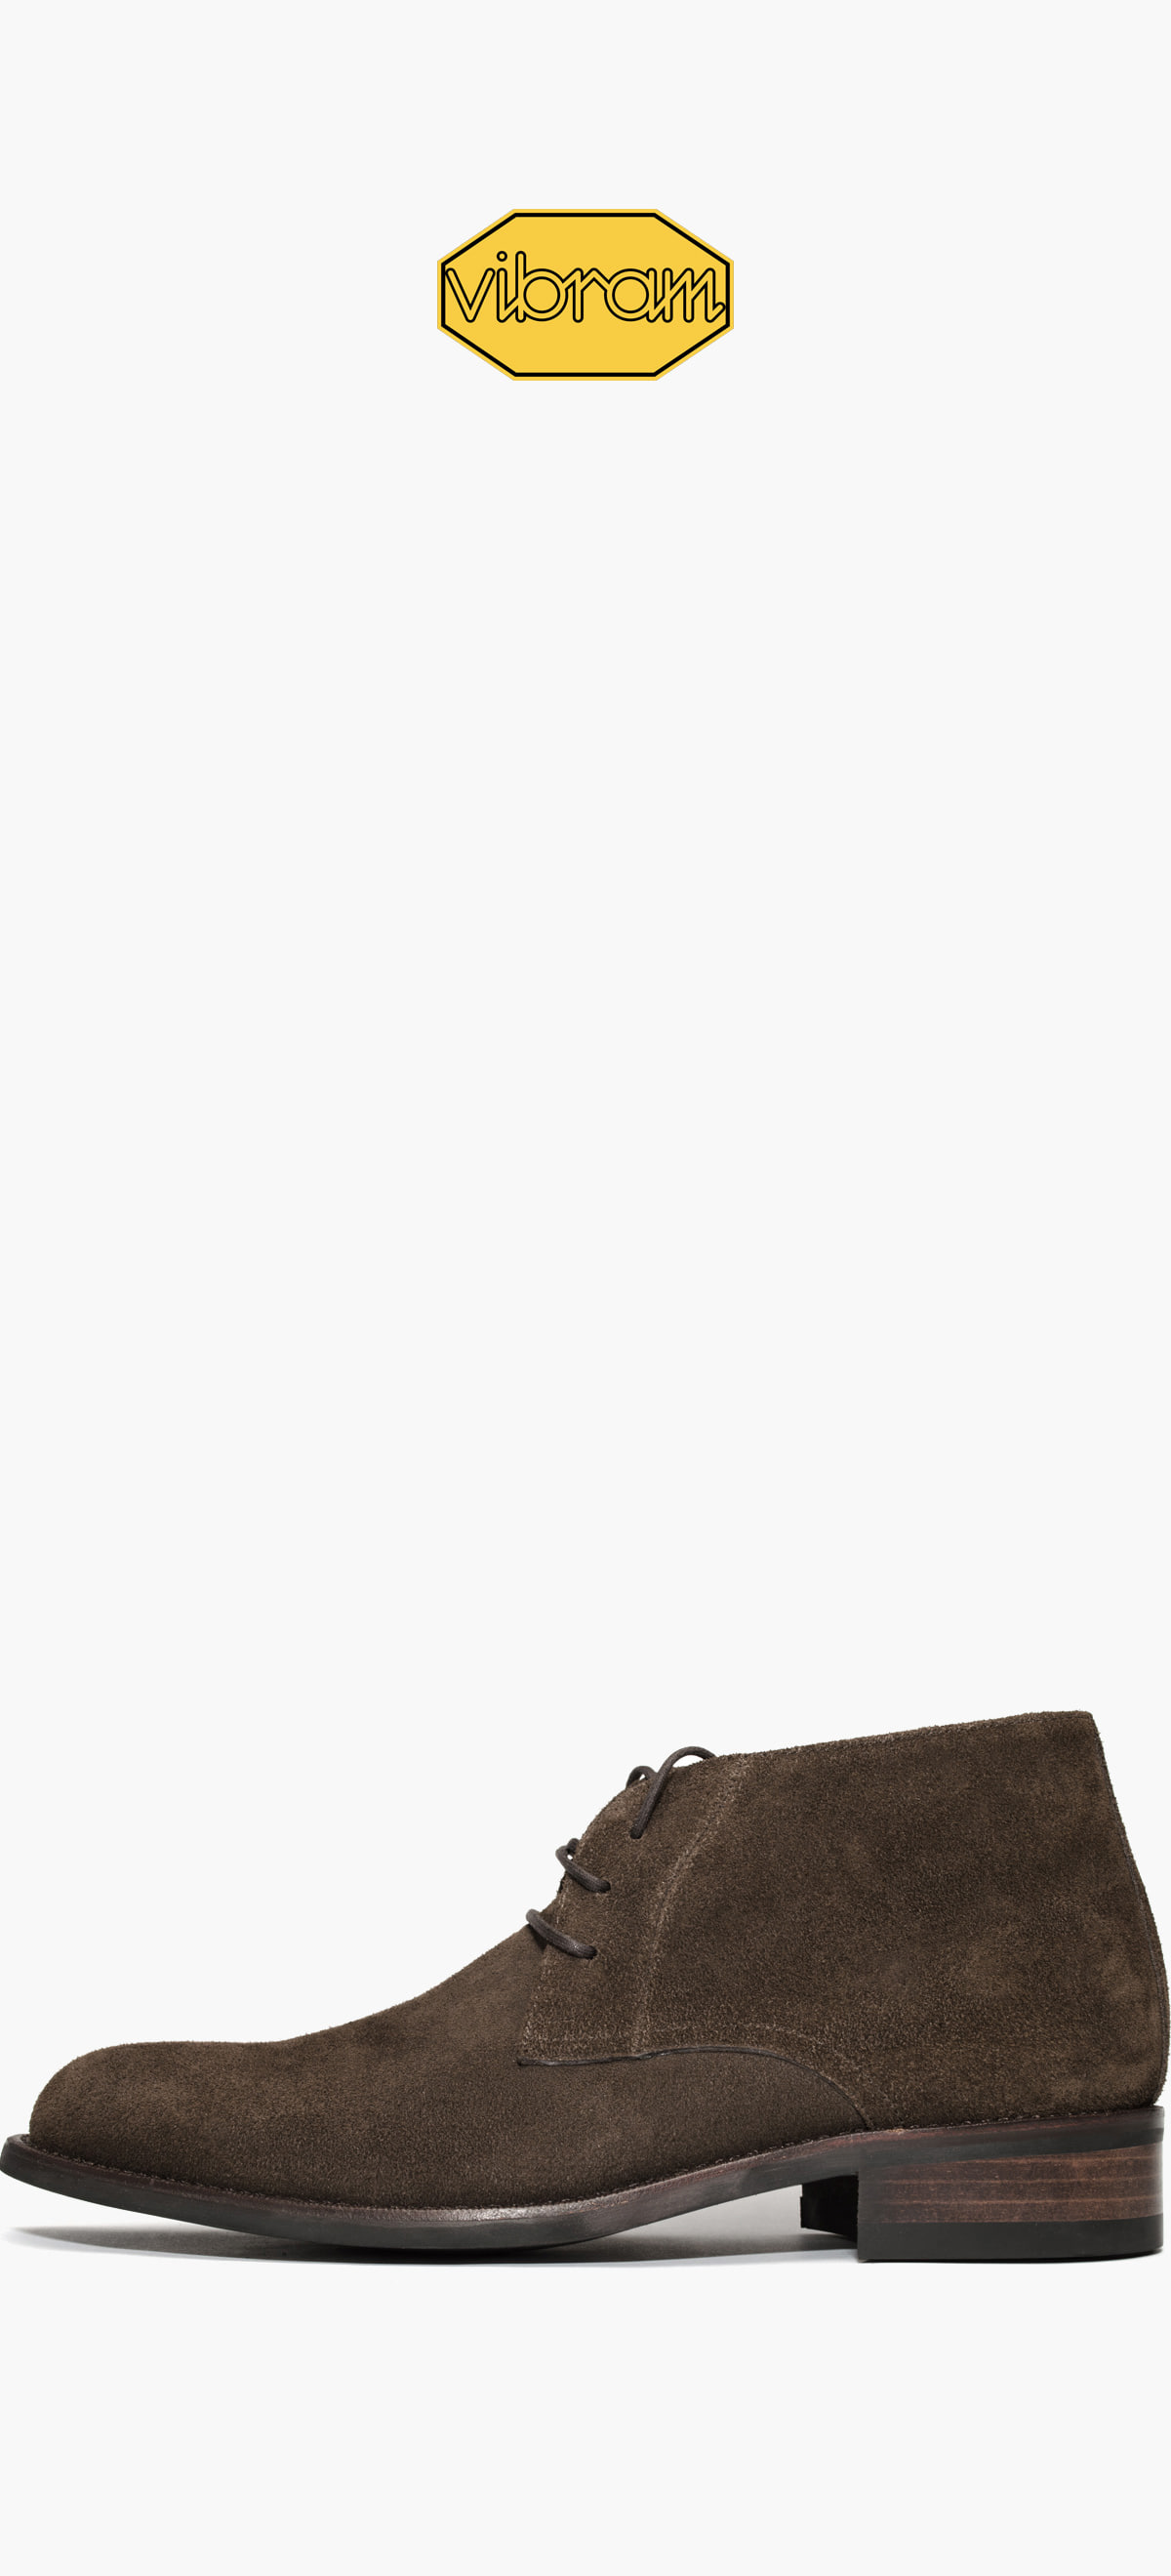 Chukka Boots 9001-02 Deep Brown Suede 20%Sale